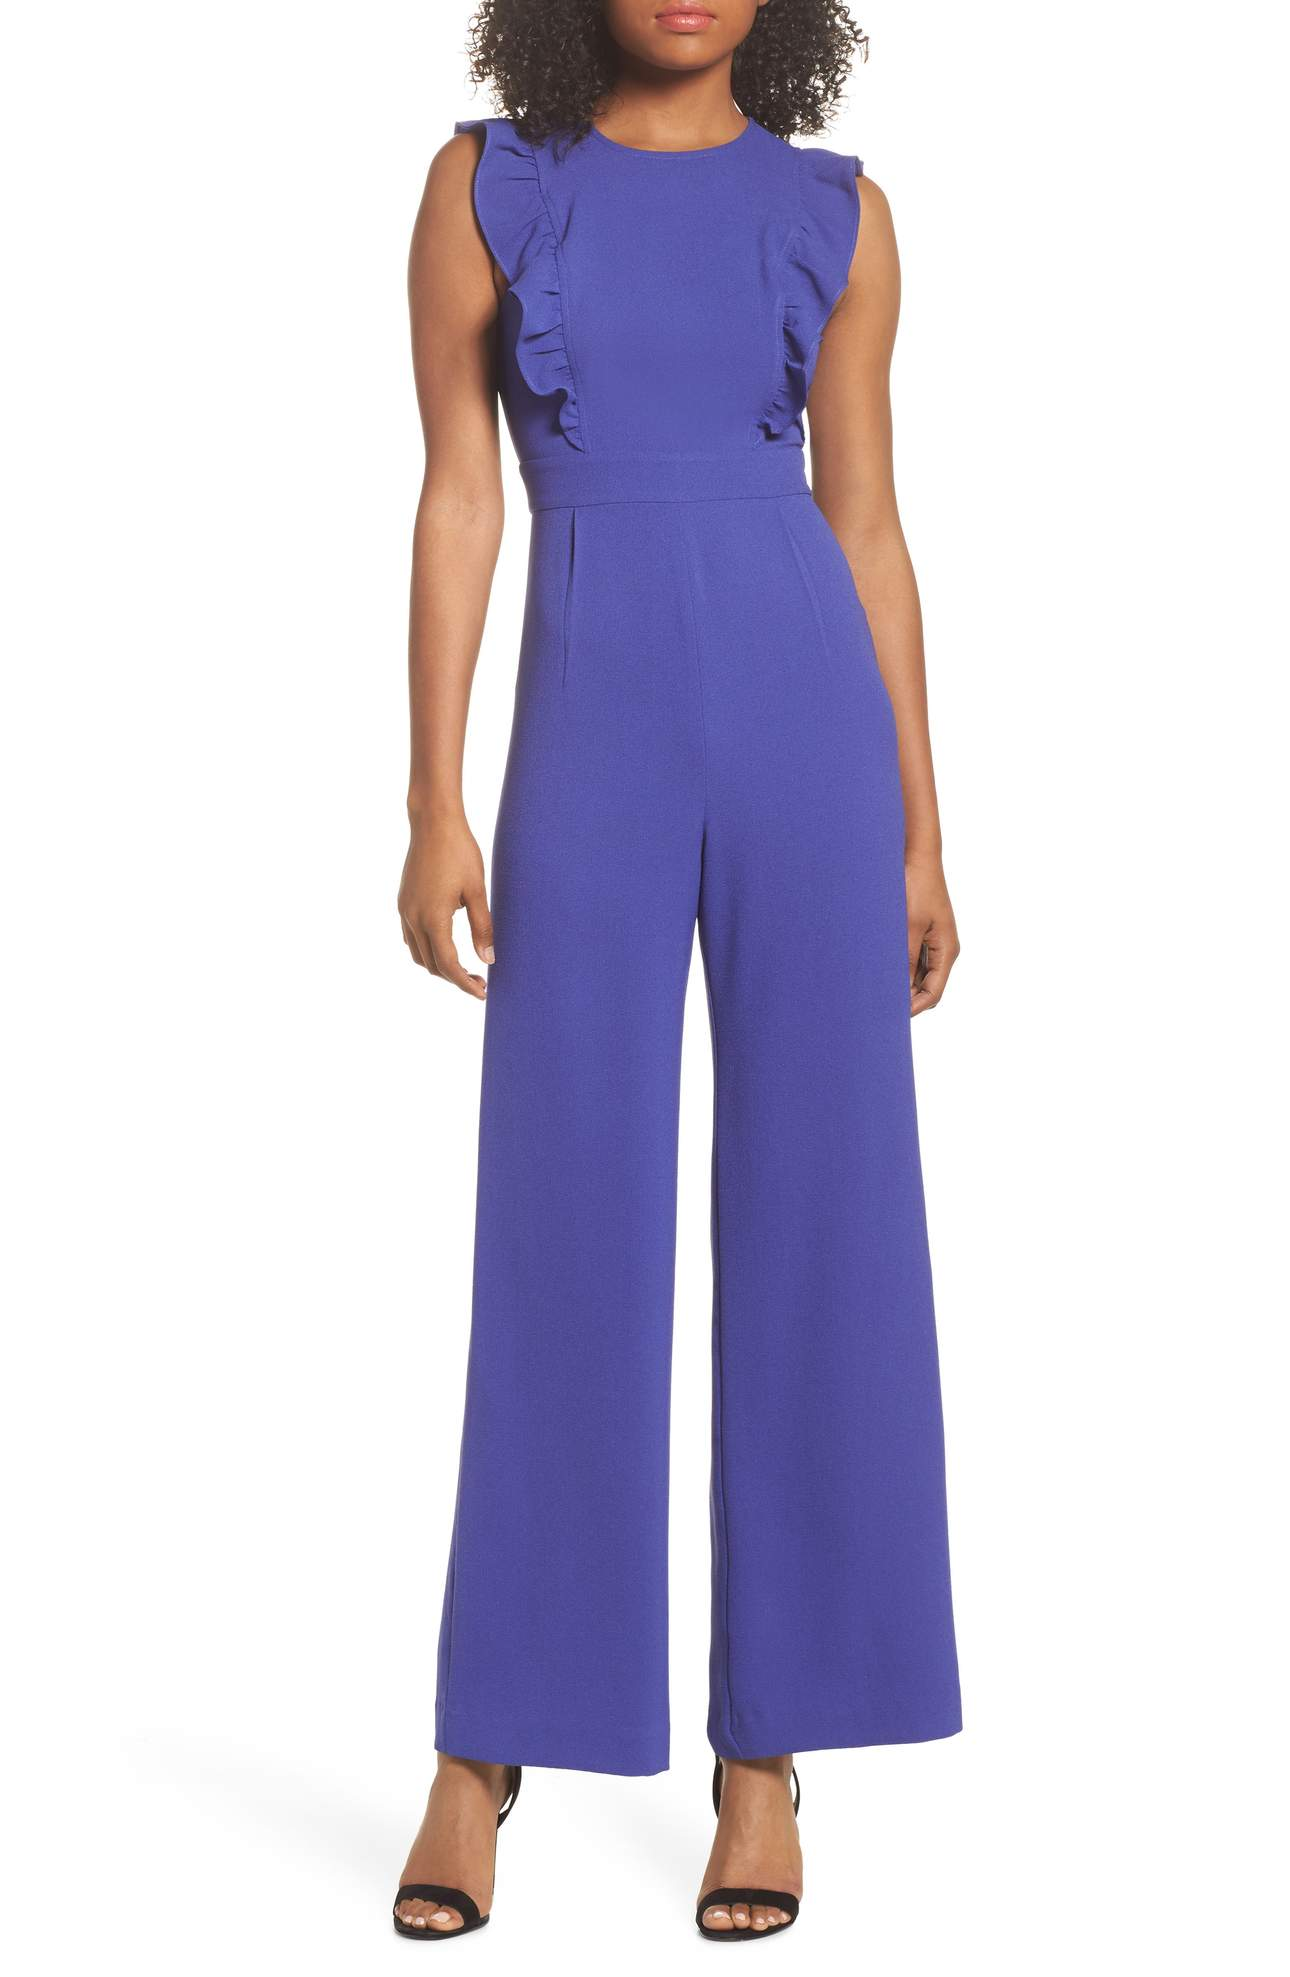 Ruffle Jumpsuit was originally $94.00 and is now $46.98with 50% off Free shipping. Charming yet sophisticated, this all-in-one jumpsuit boasts a romantically ruffled bodice, fitted waist and flowy palazzo pants.